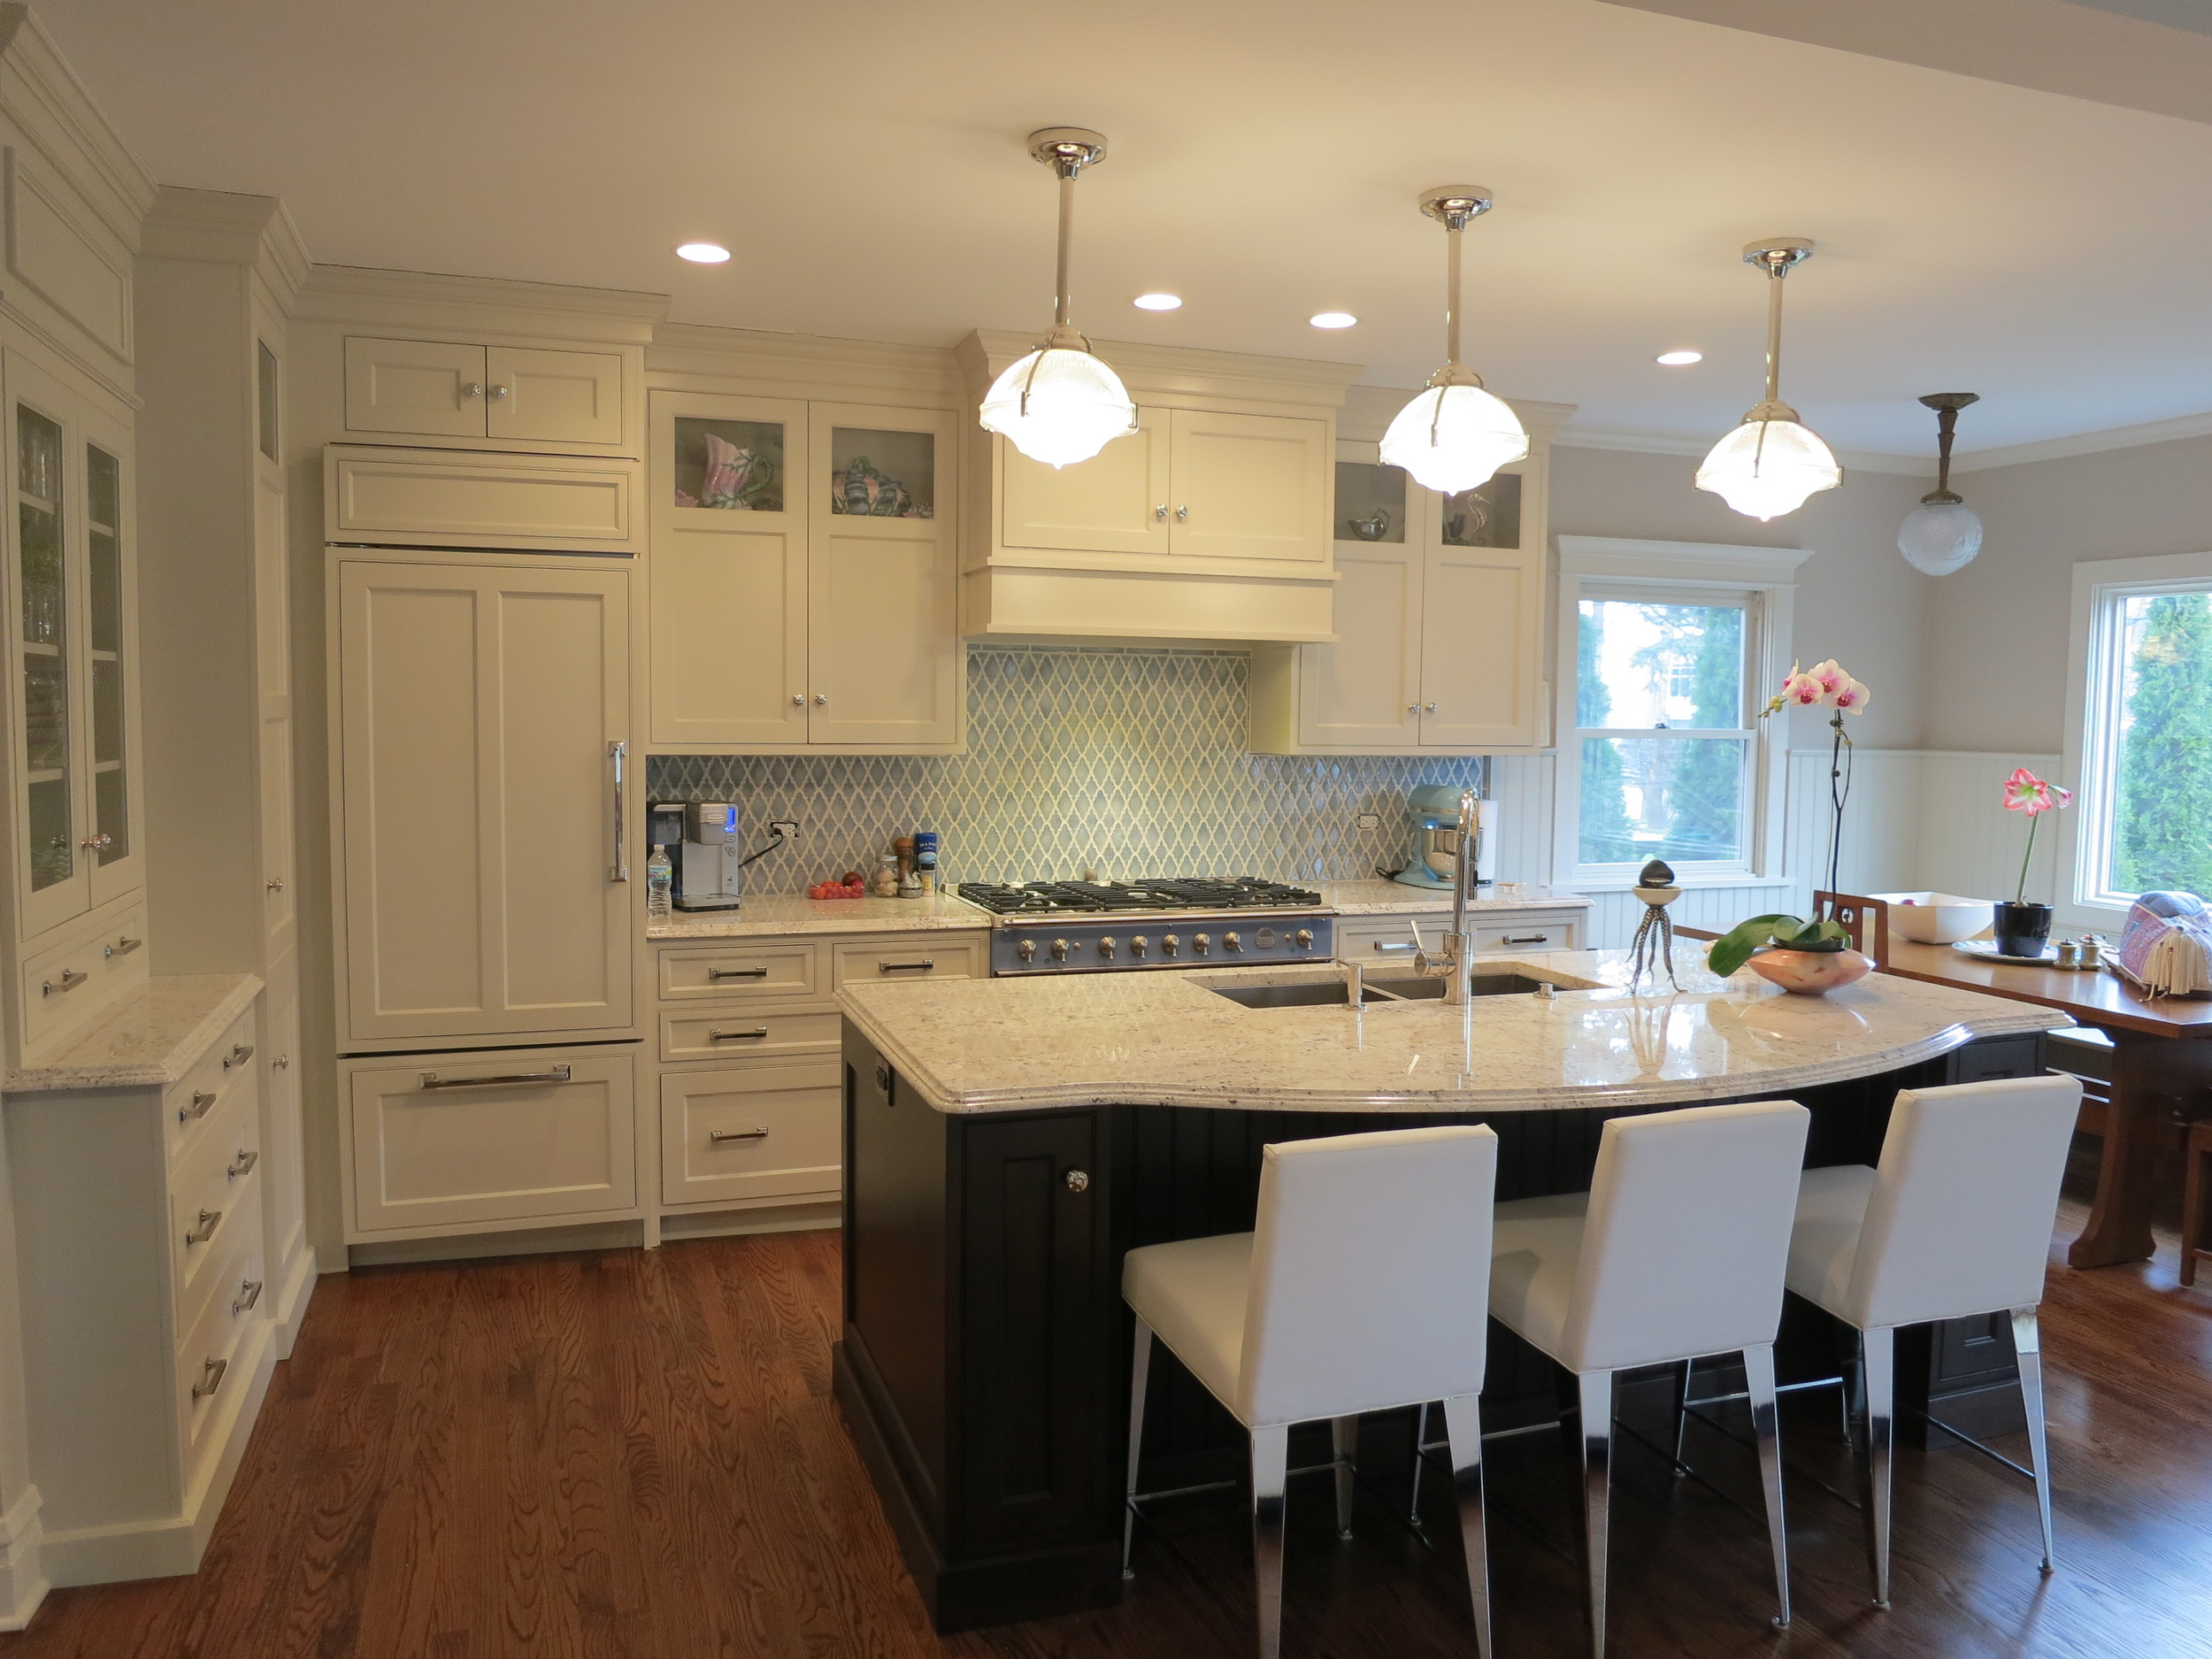 Wilmette remodel by Chester & Chester